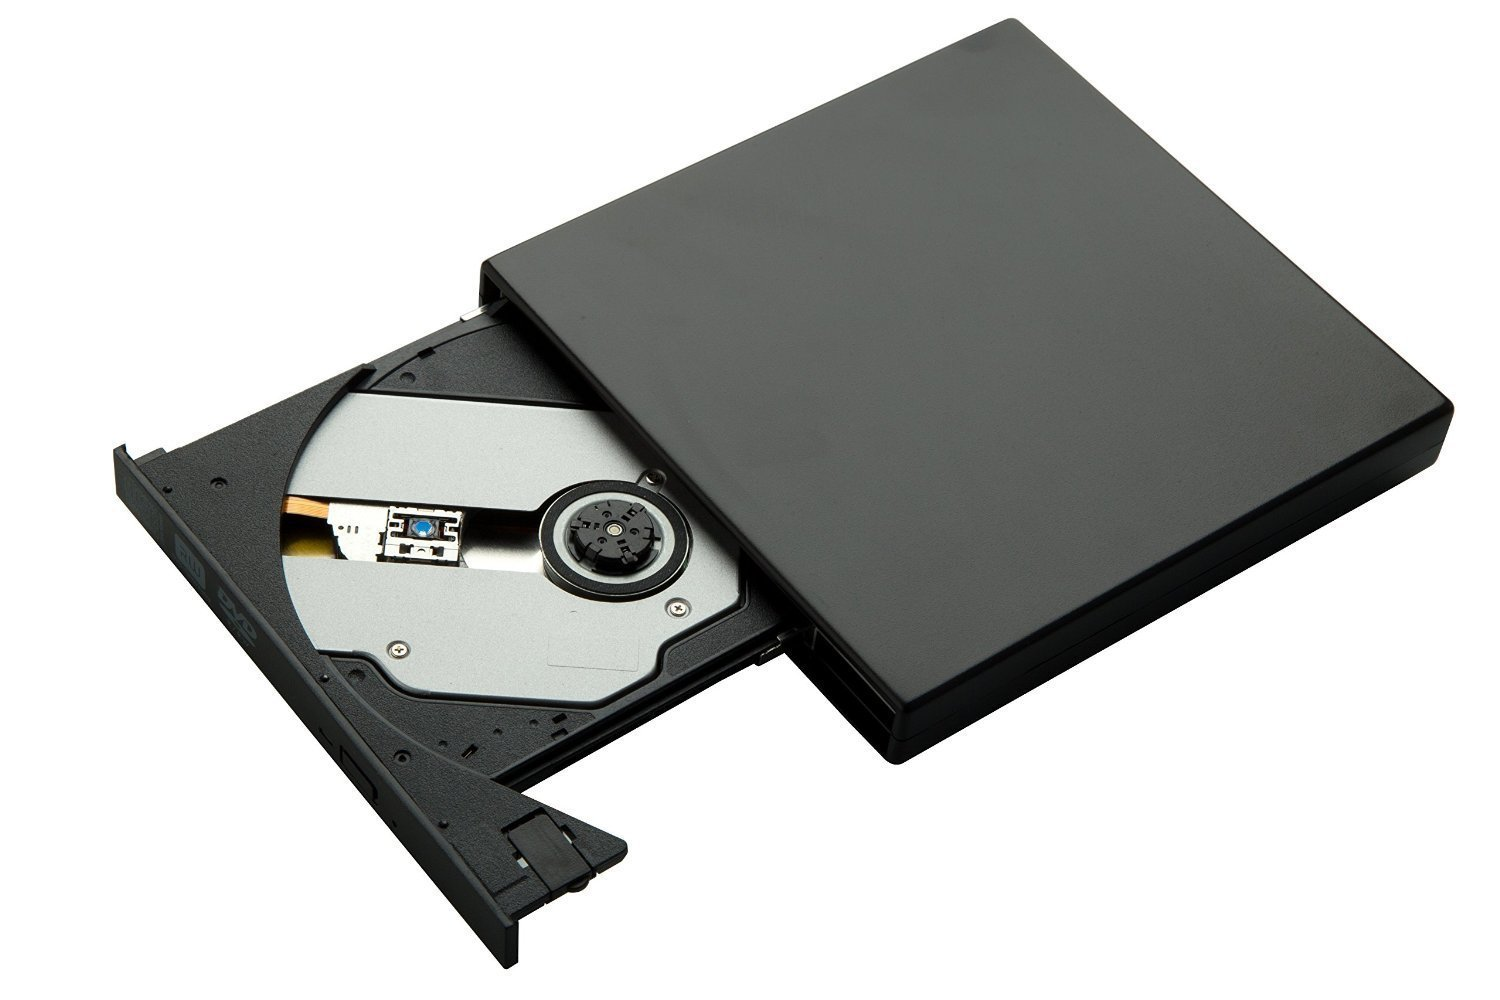 Amazon.com: External USB DVD/CD: Computers & Accessories